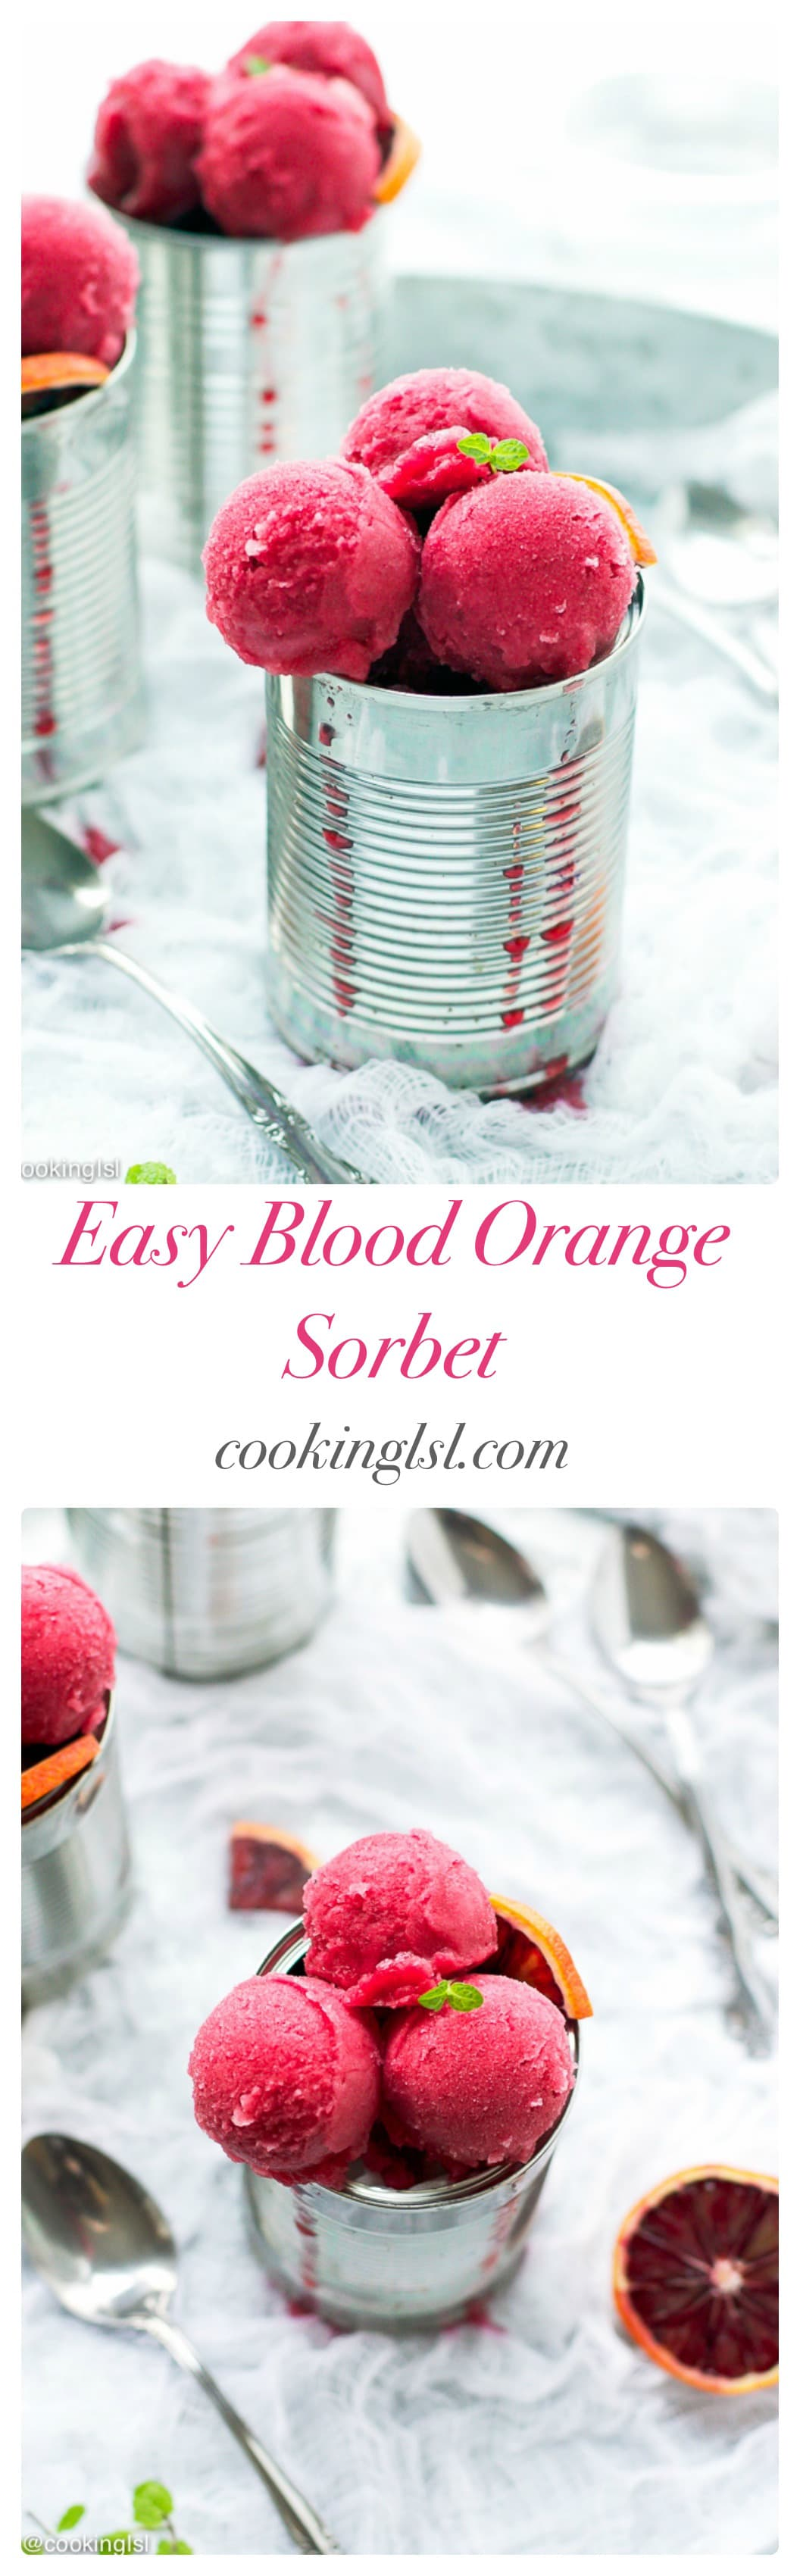 blood-orange-sorbet-recipe